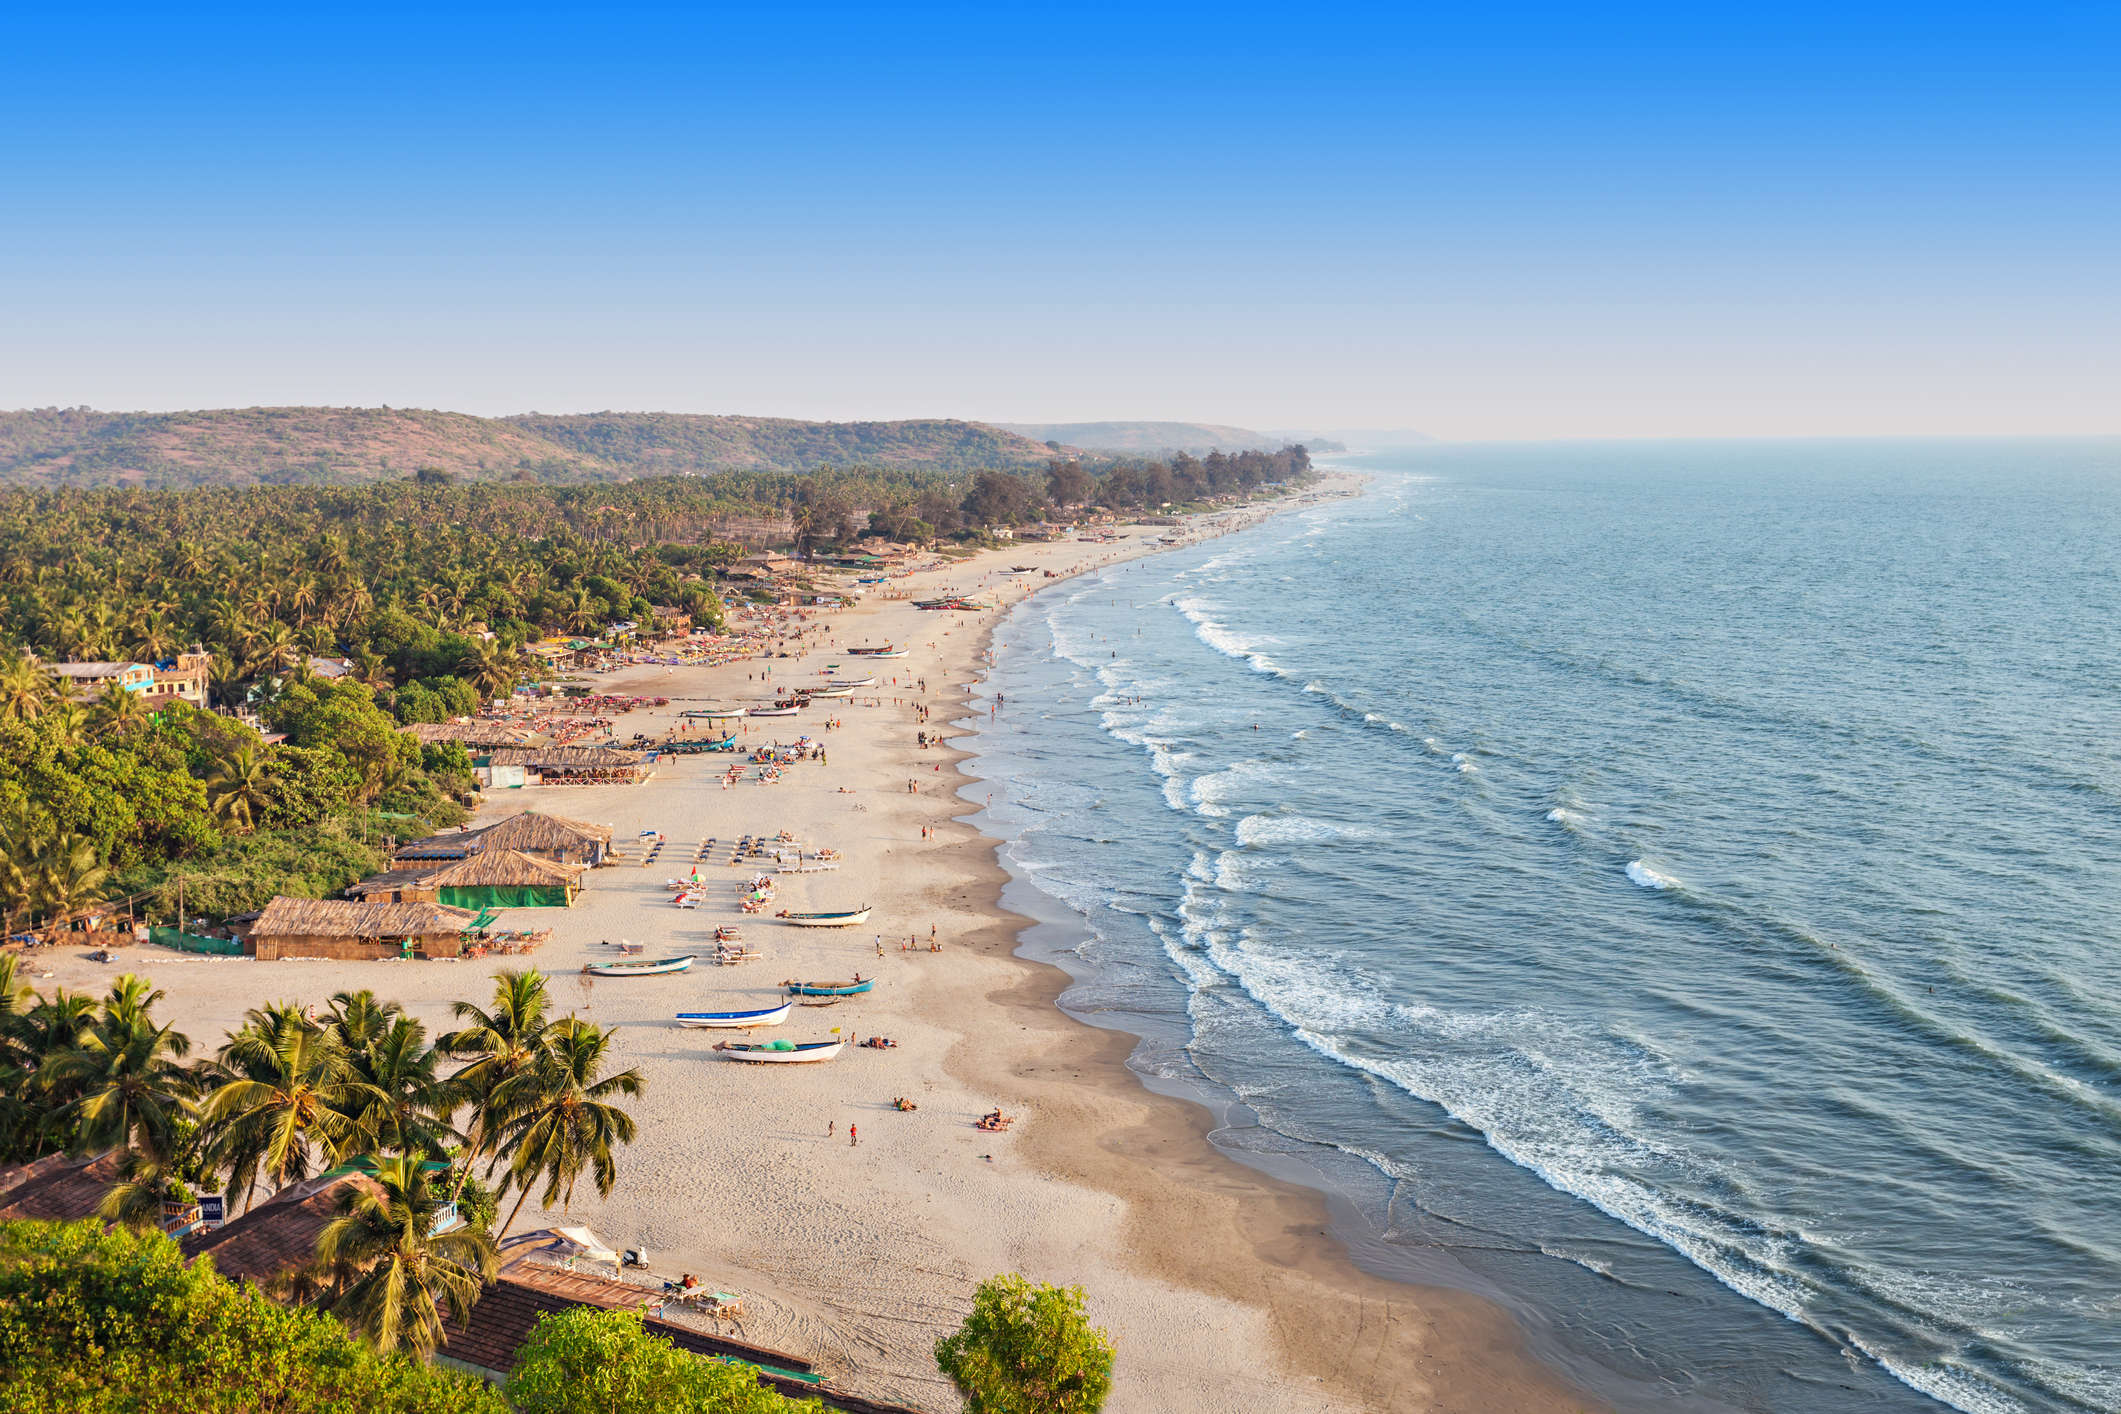 Goa beaches to reopen for swimming from November 1